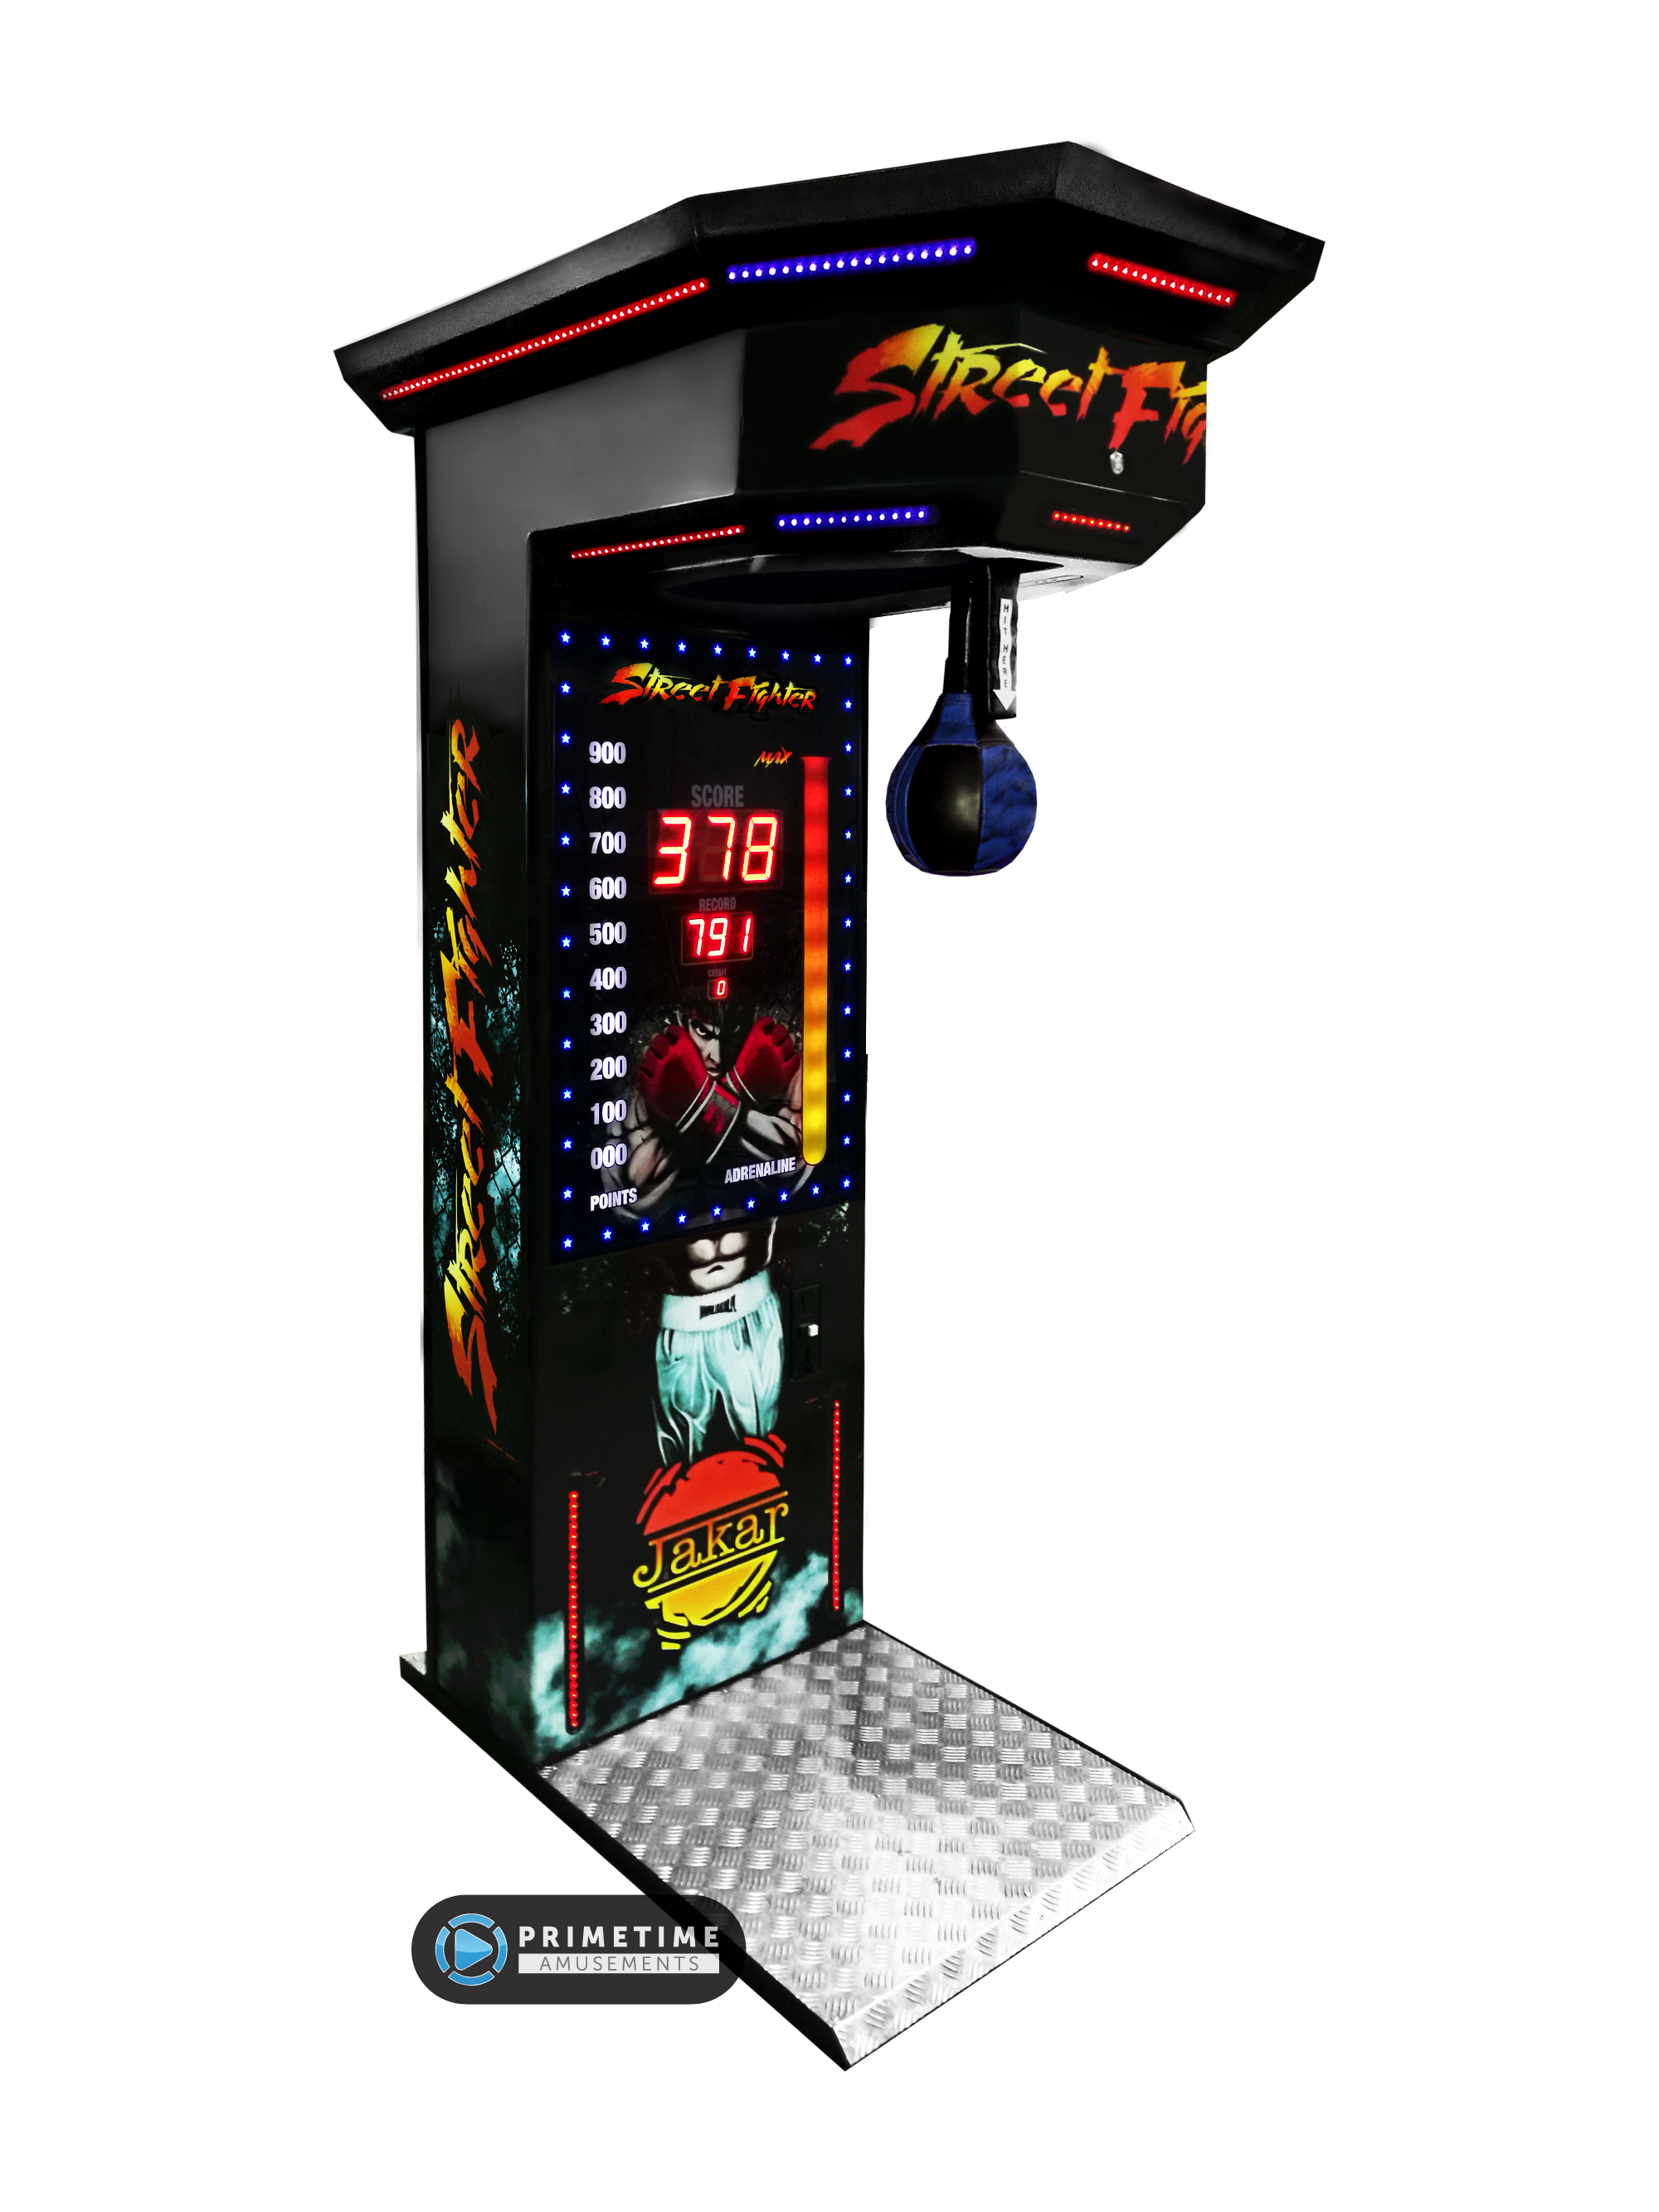 Game clipart arcade. Sports games for sale